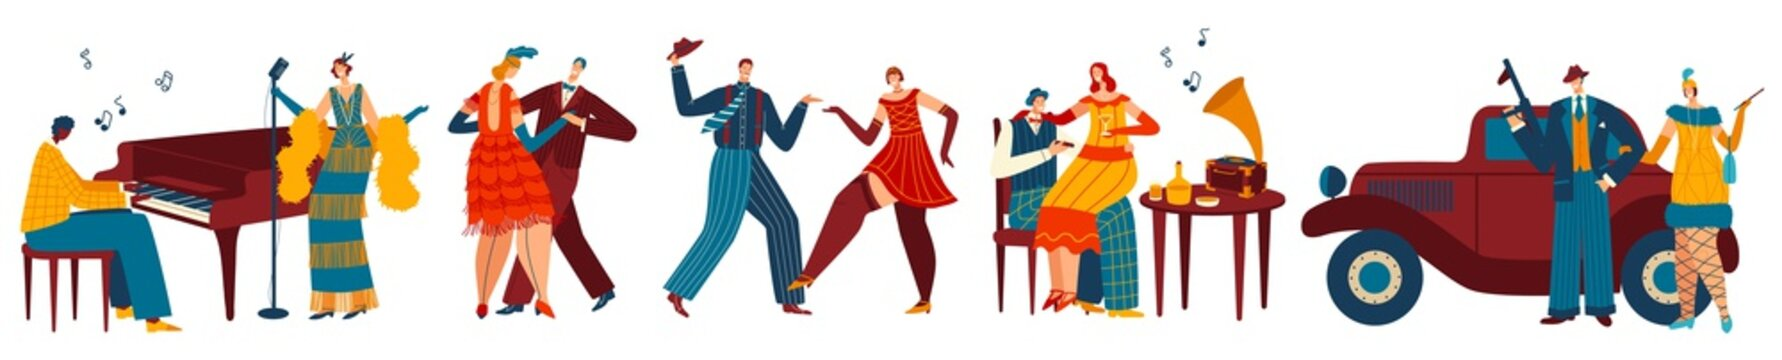 Dancing people in retro style, gangster party vector illustration. Cartoon characters in art deco fashion, dancers and singer at restaurant. Men and women dance to jazz music, mafia style party